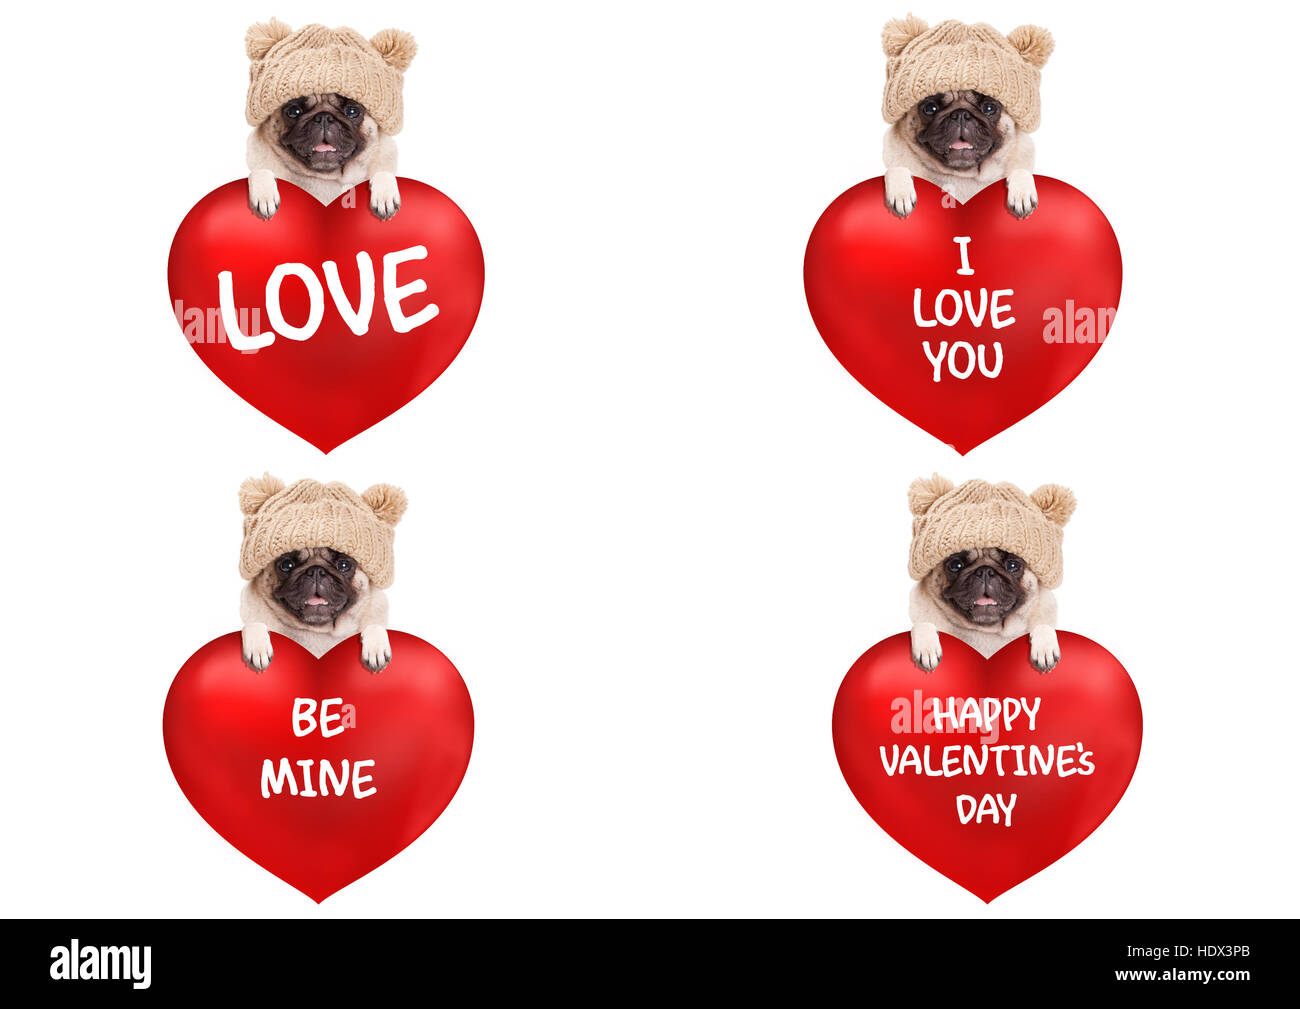 lovely cute pug puppy dog hanging with paws on big valentine's day heart with text, isolated on white background - Stock Image